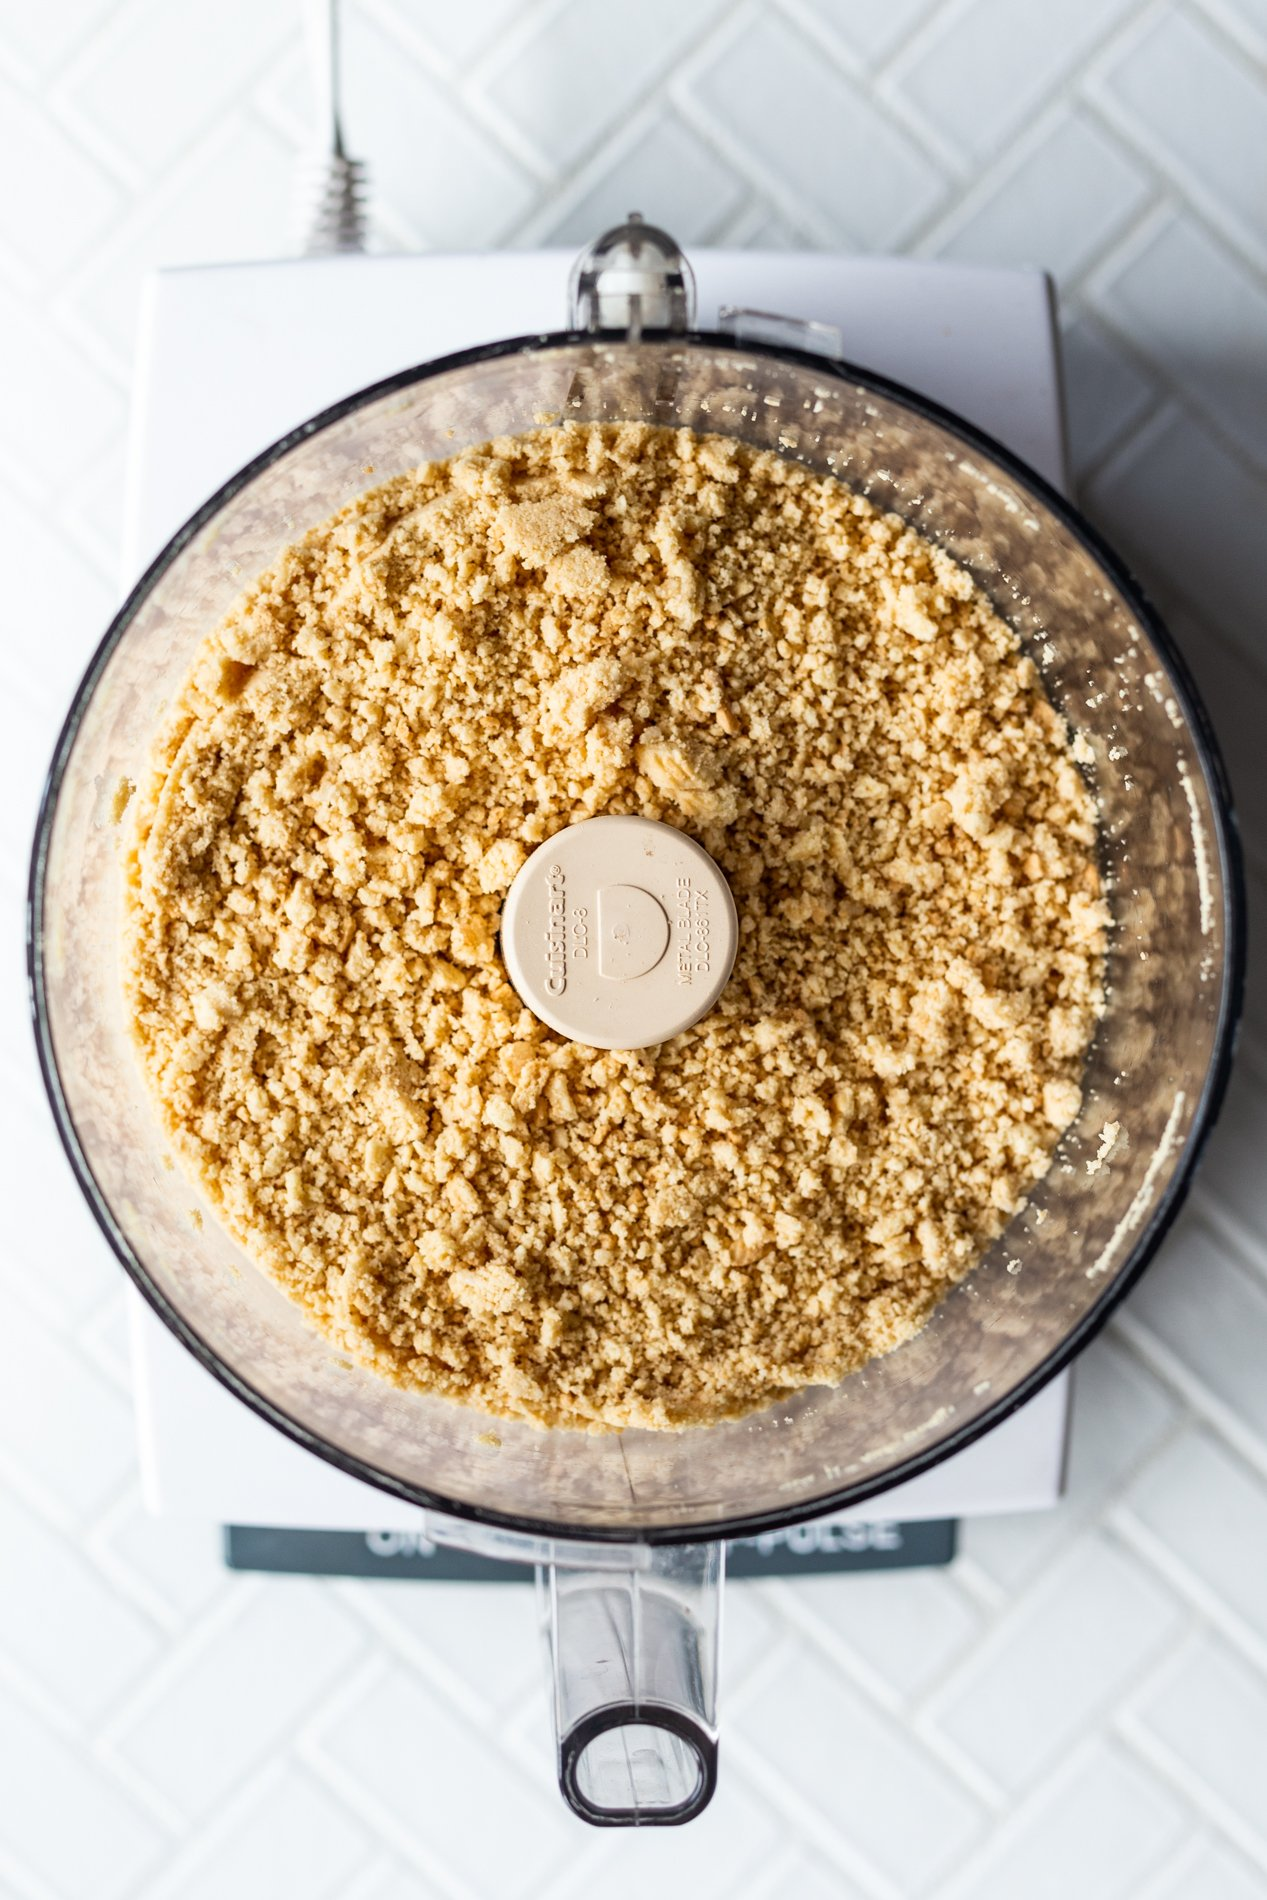 overhead view of a food processor with processed golden cookies inside